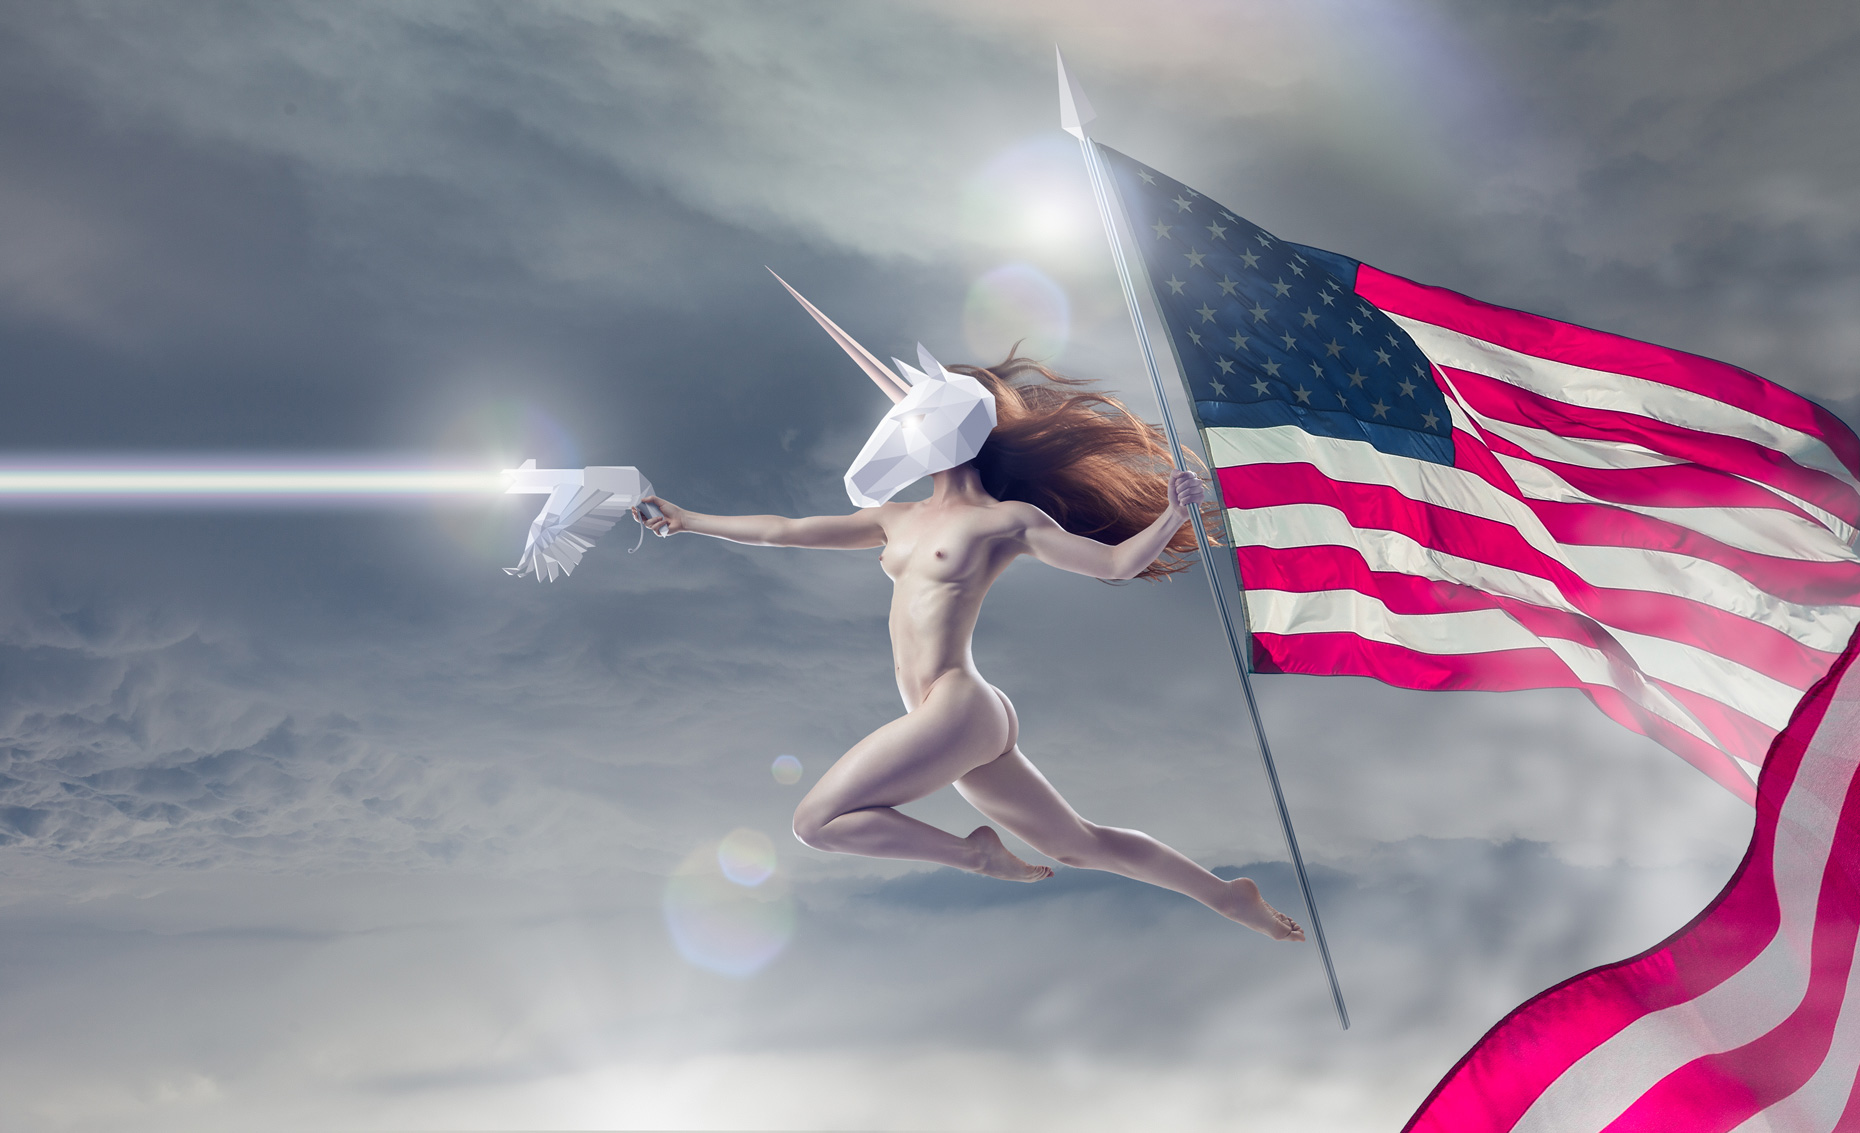 Kitfox Valentín : Fourth of July Unicorn Spirit of Patriotism, Independence Day & America, wielding her flag bearing Spear of Destiny and Bald Eagle ray gun of truth & rainbows